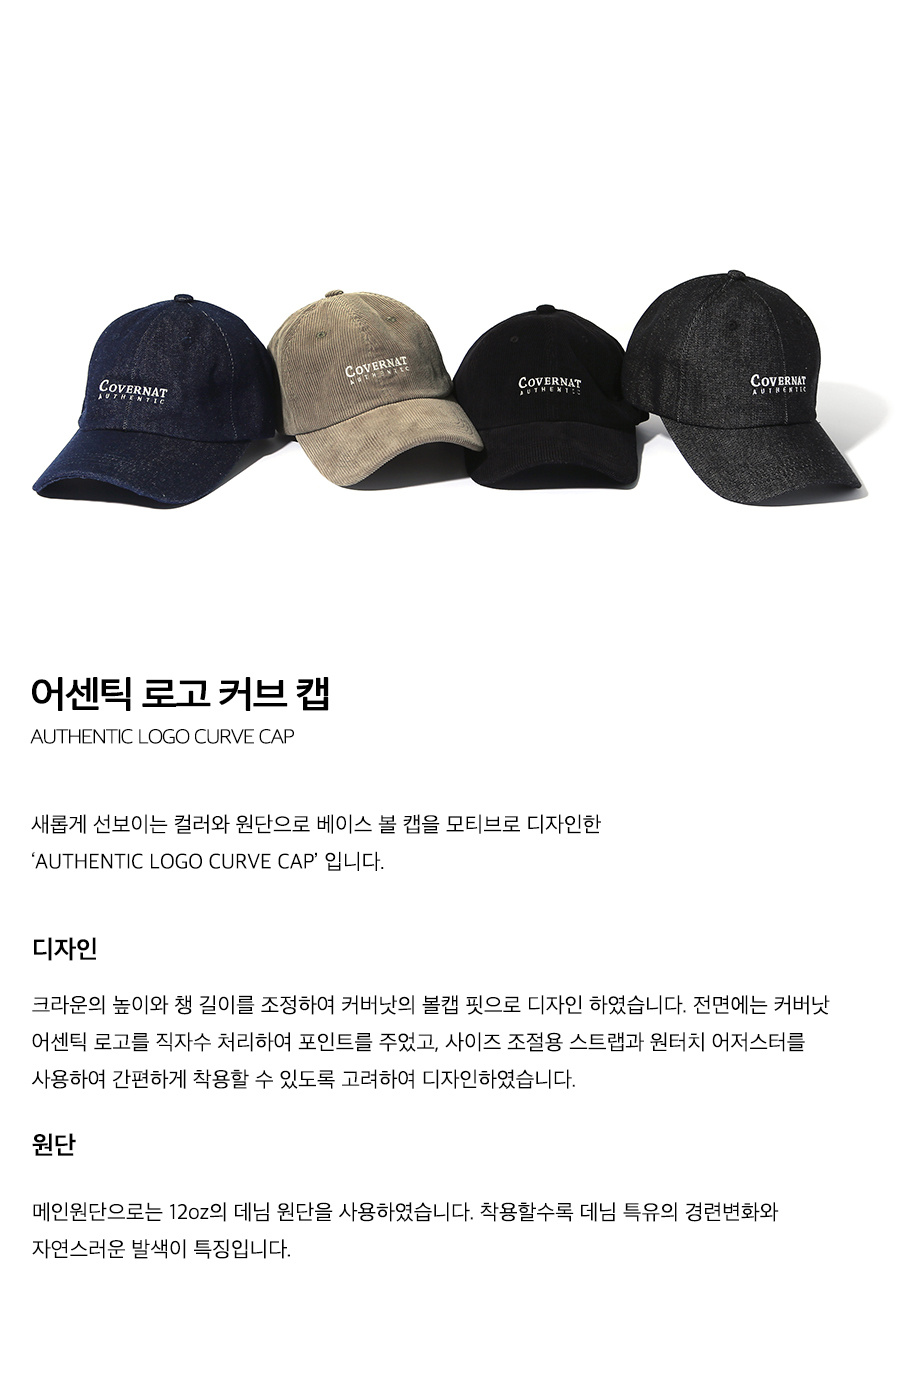 커버낫(COVERNAT) AUTHENTIC LOGO CURVE CAP DENIM BLACK